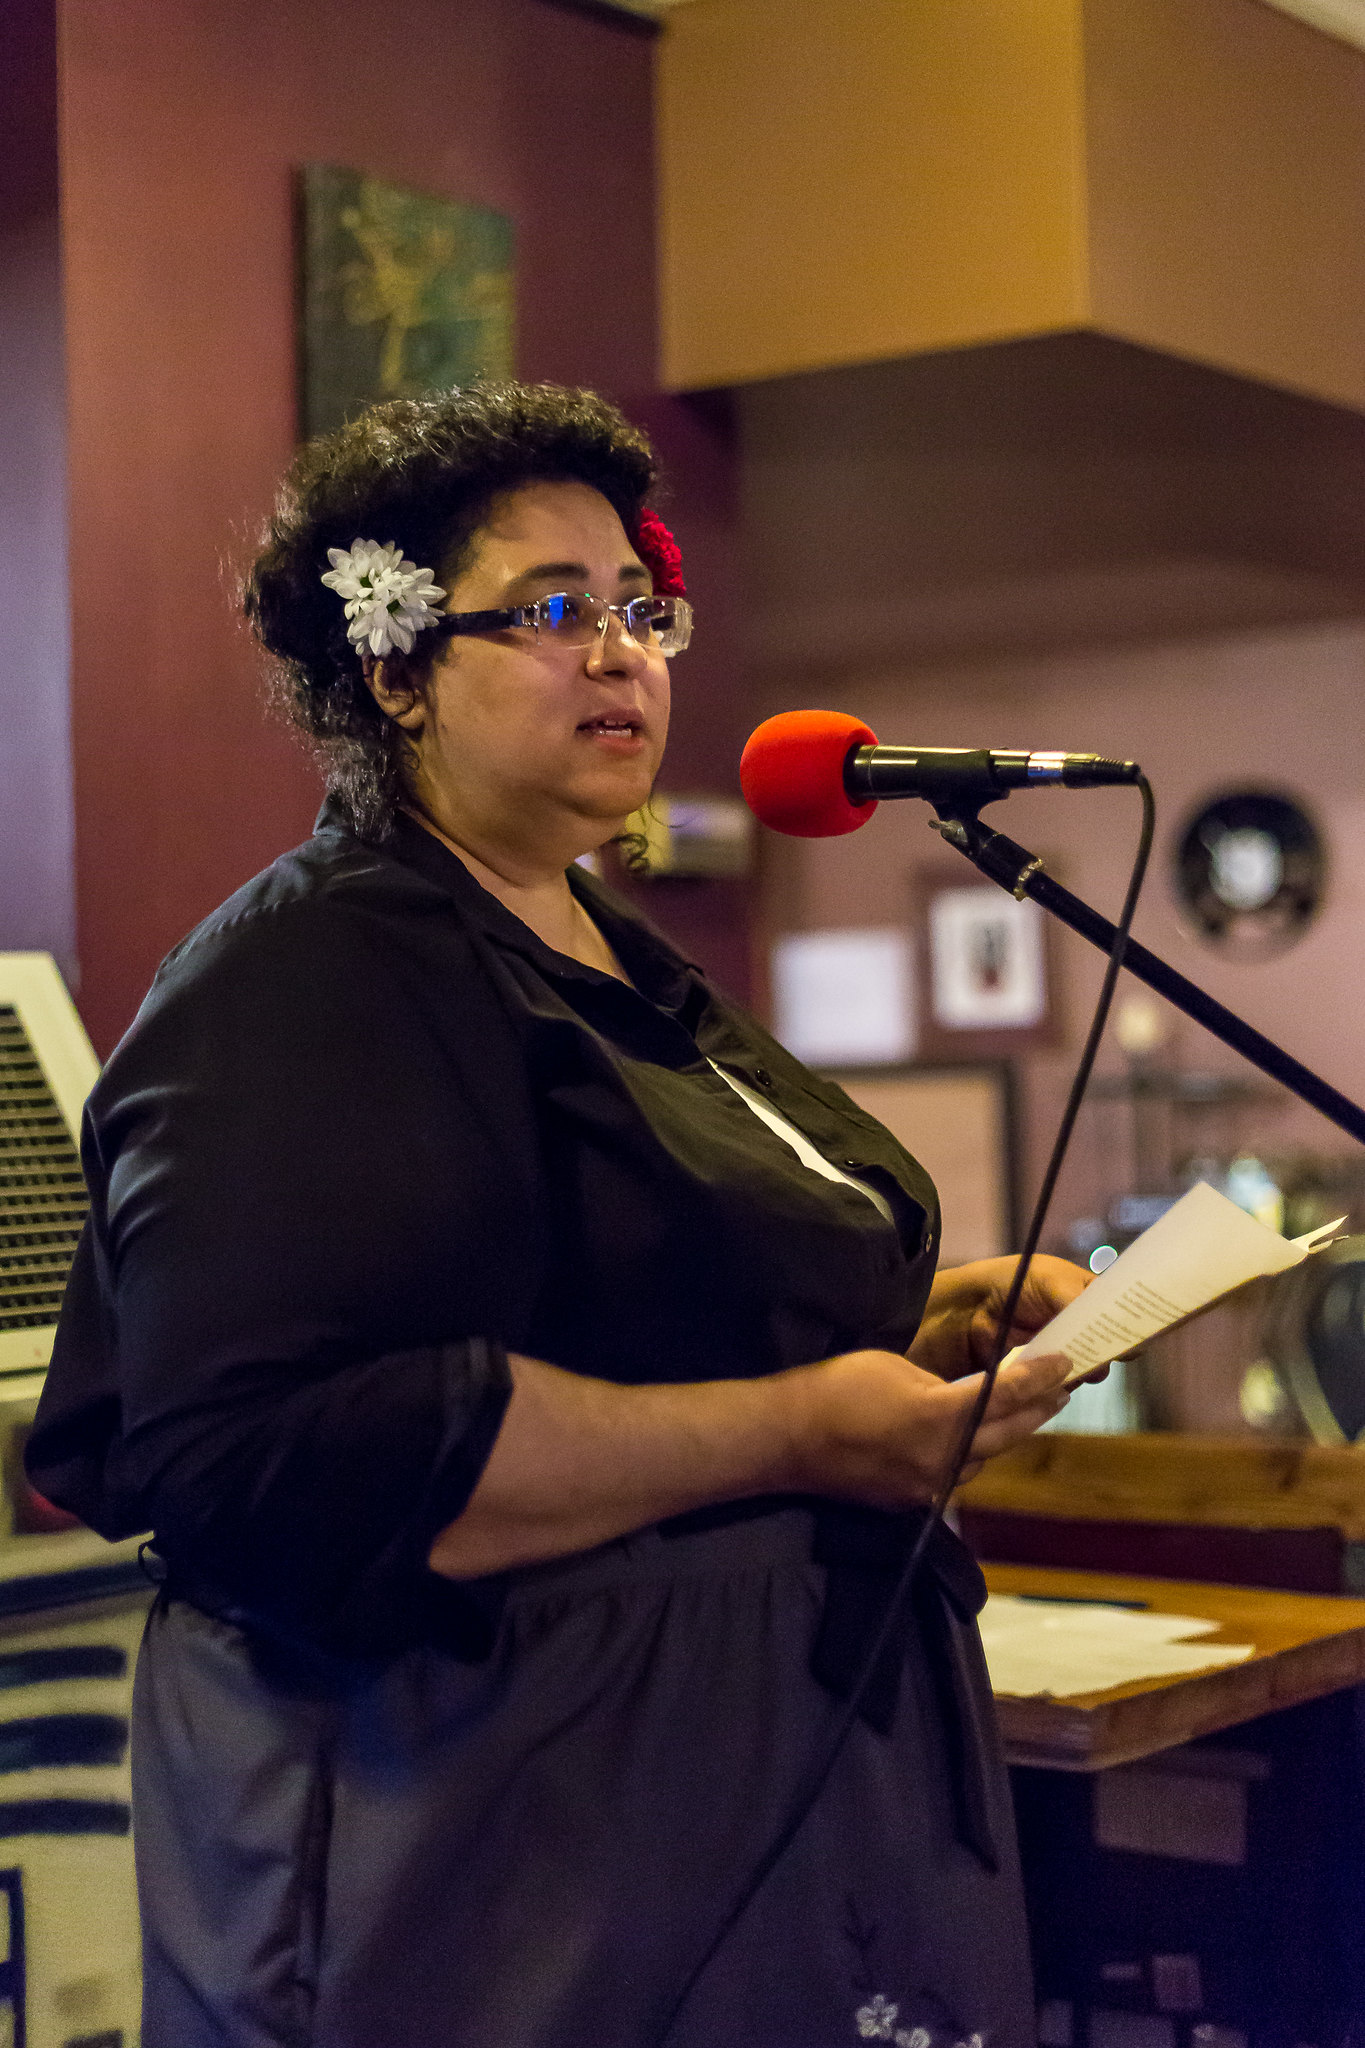 Natalie Hanna - Sawdust Reading Series - Aug 19, 2015